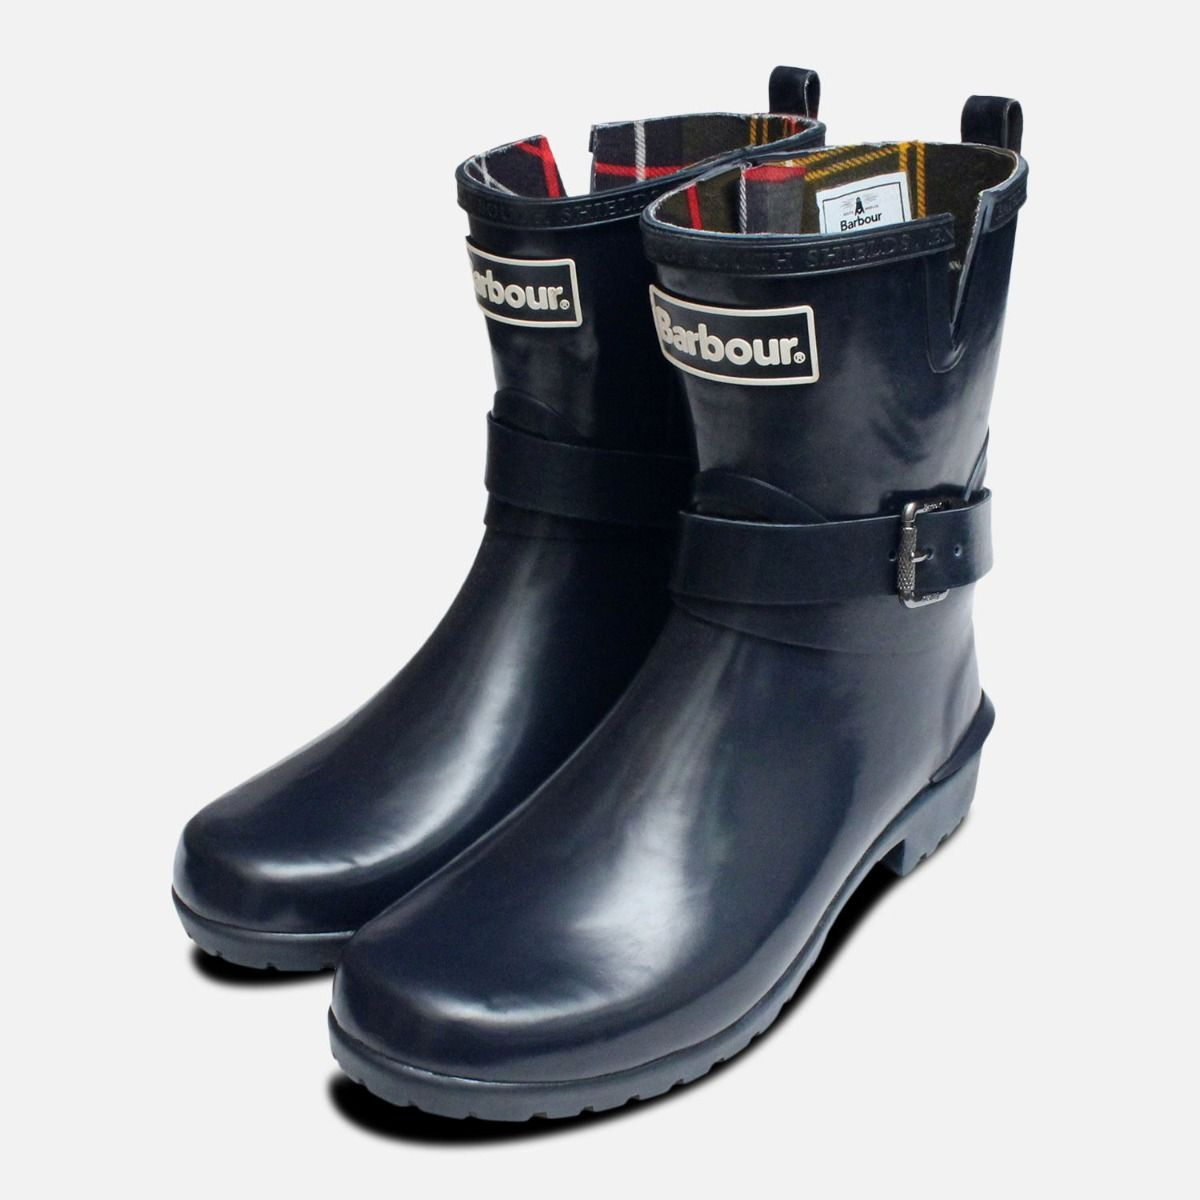 5ff13429e Barbour Biker Buckle Wellington Boots in Navy Blue